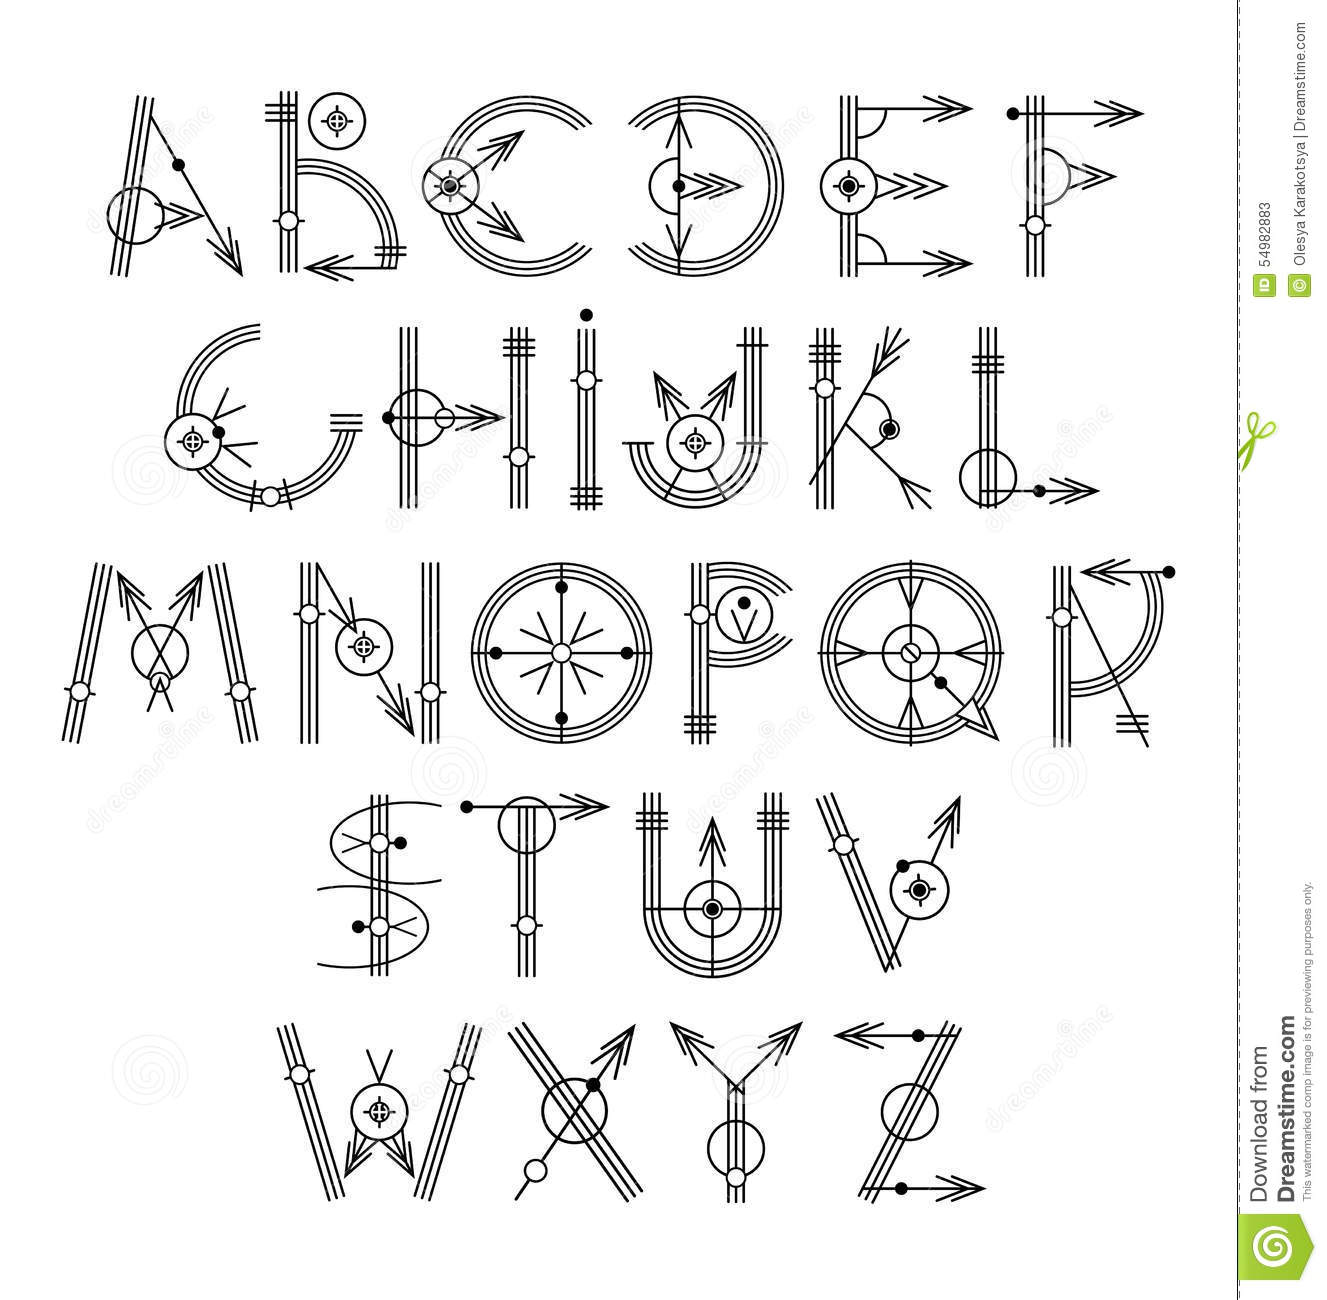 Alphabet cr atif unique original de noir de hippie illustration de vecteur image 54982883 - Lettre alphabet original ...